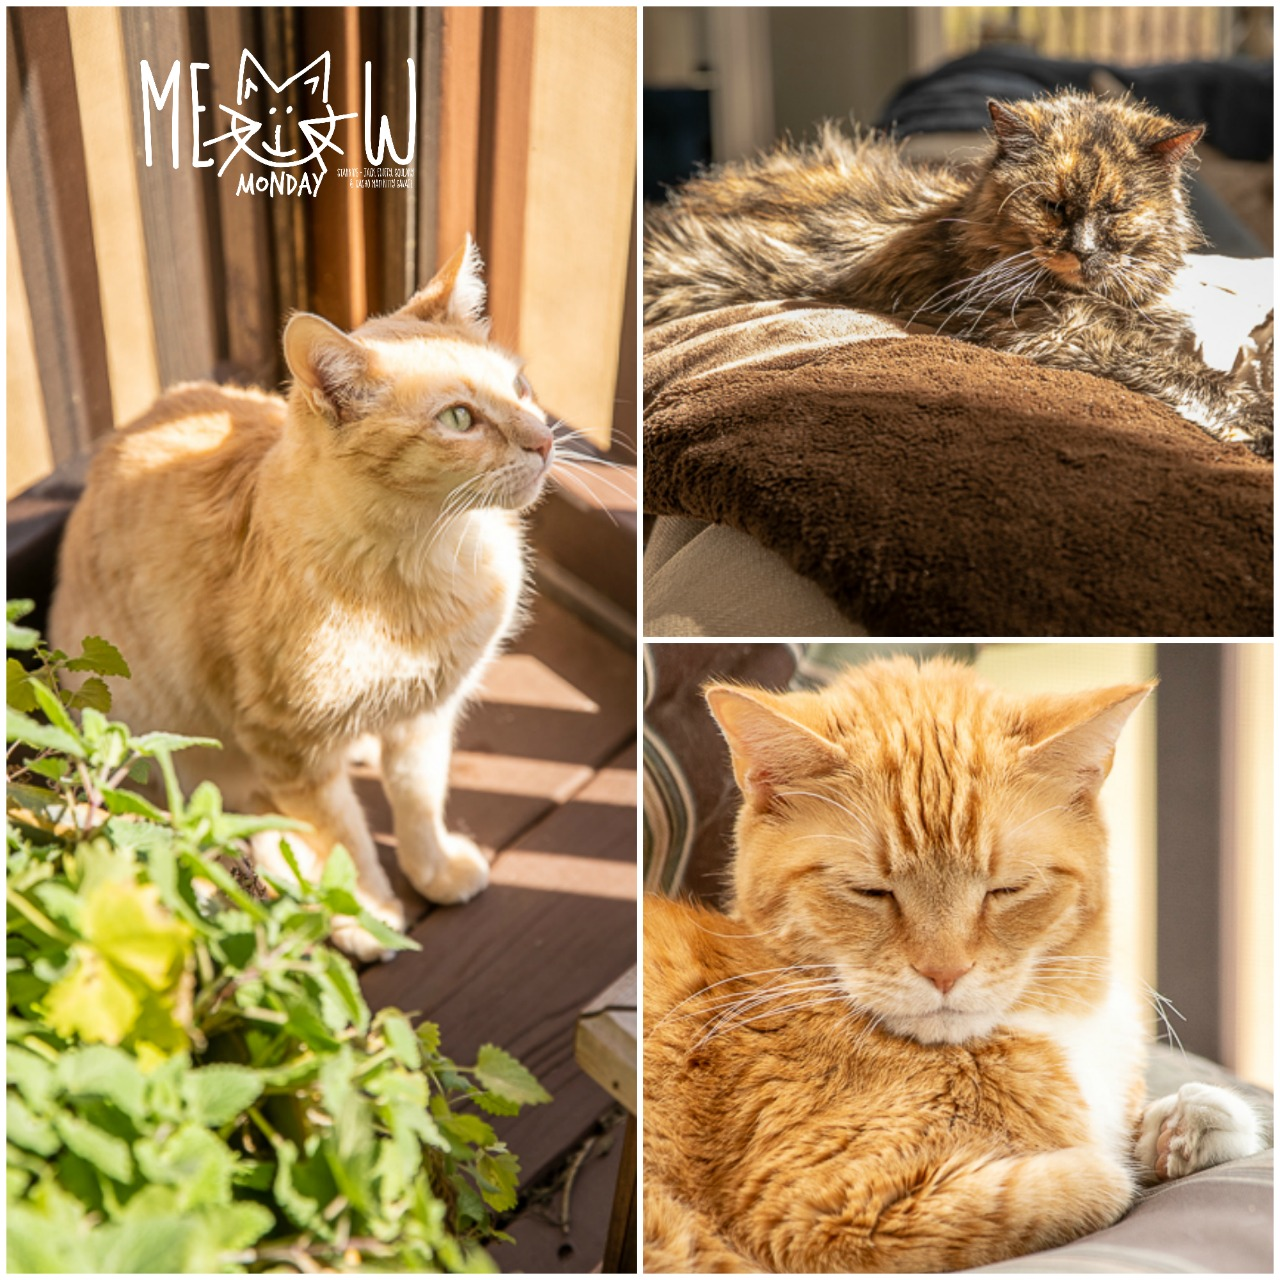 Pictures of three cats